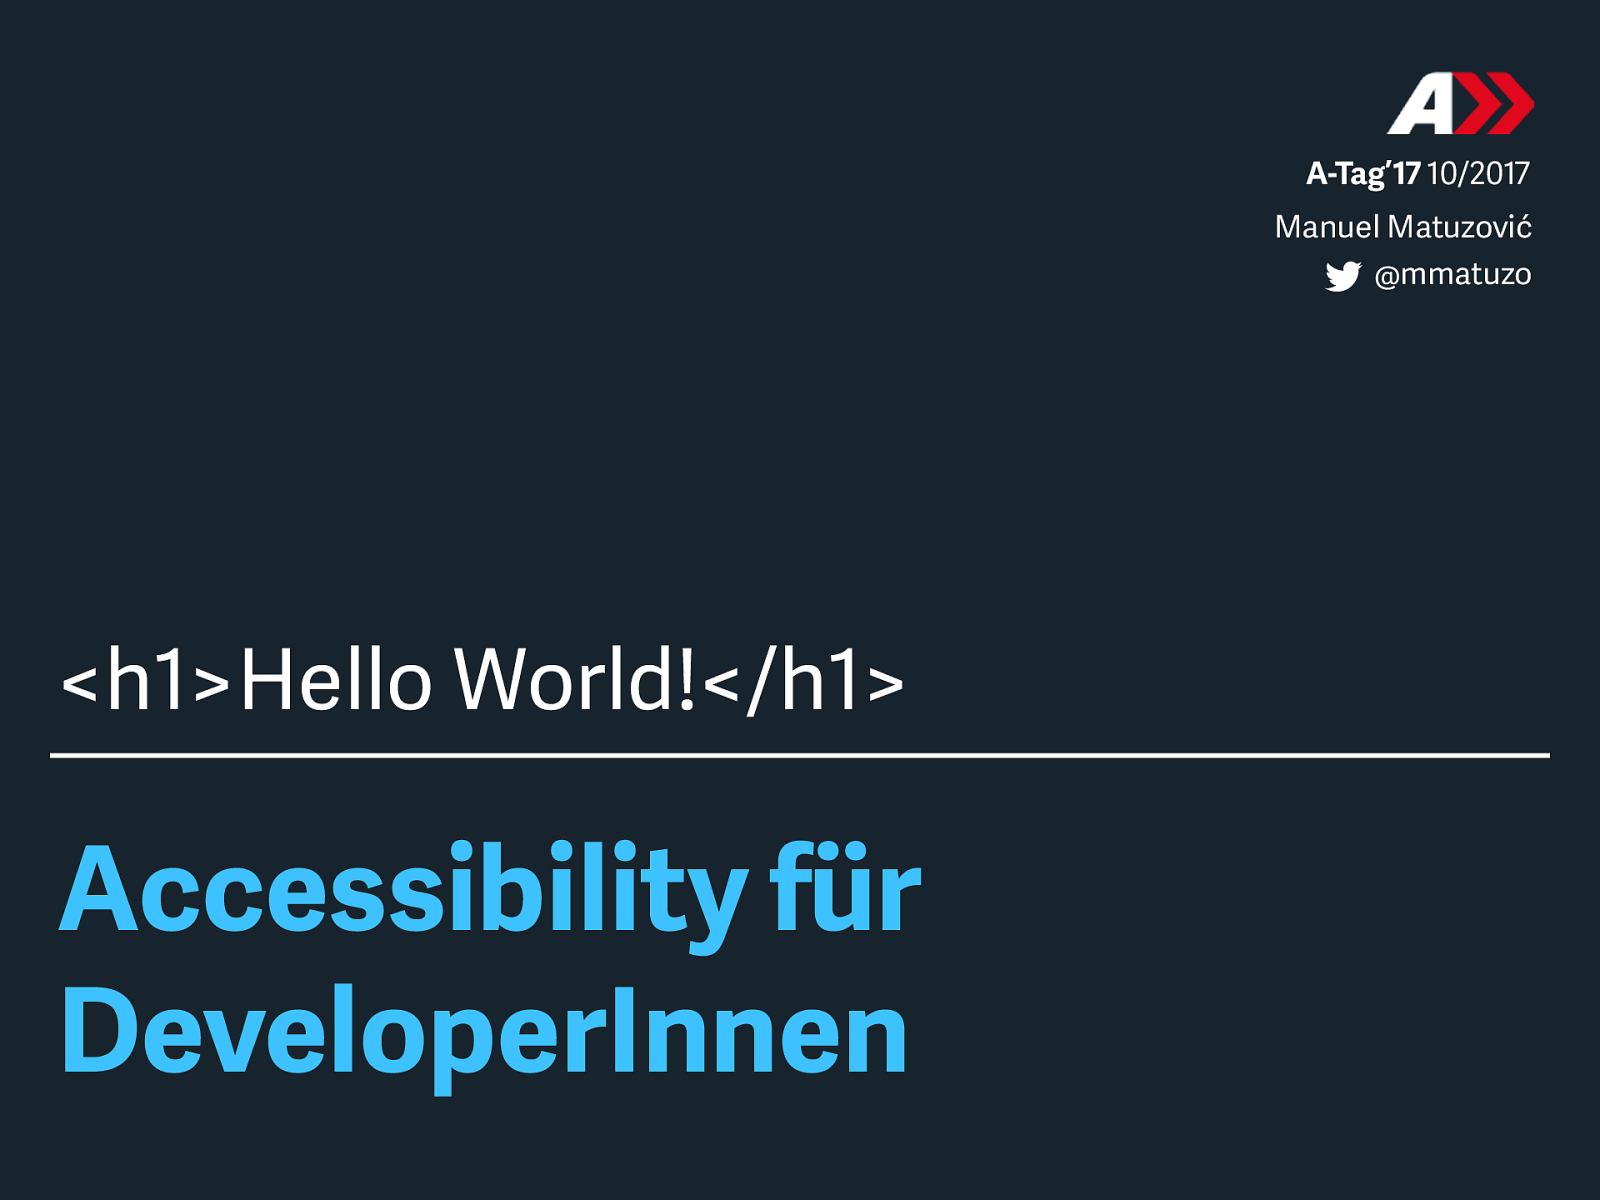 Accessibility für DeveloperInnen: Hello World!